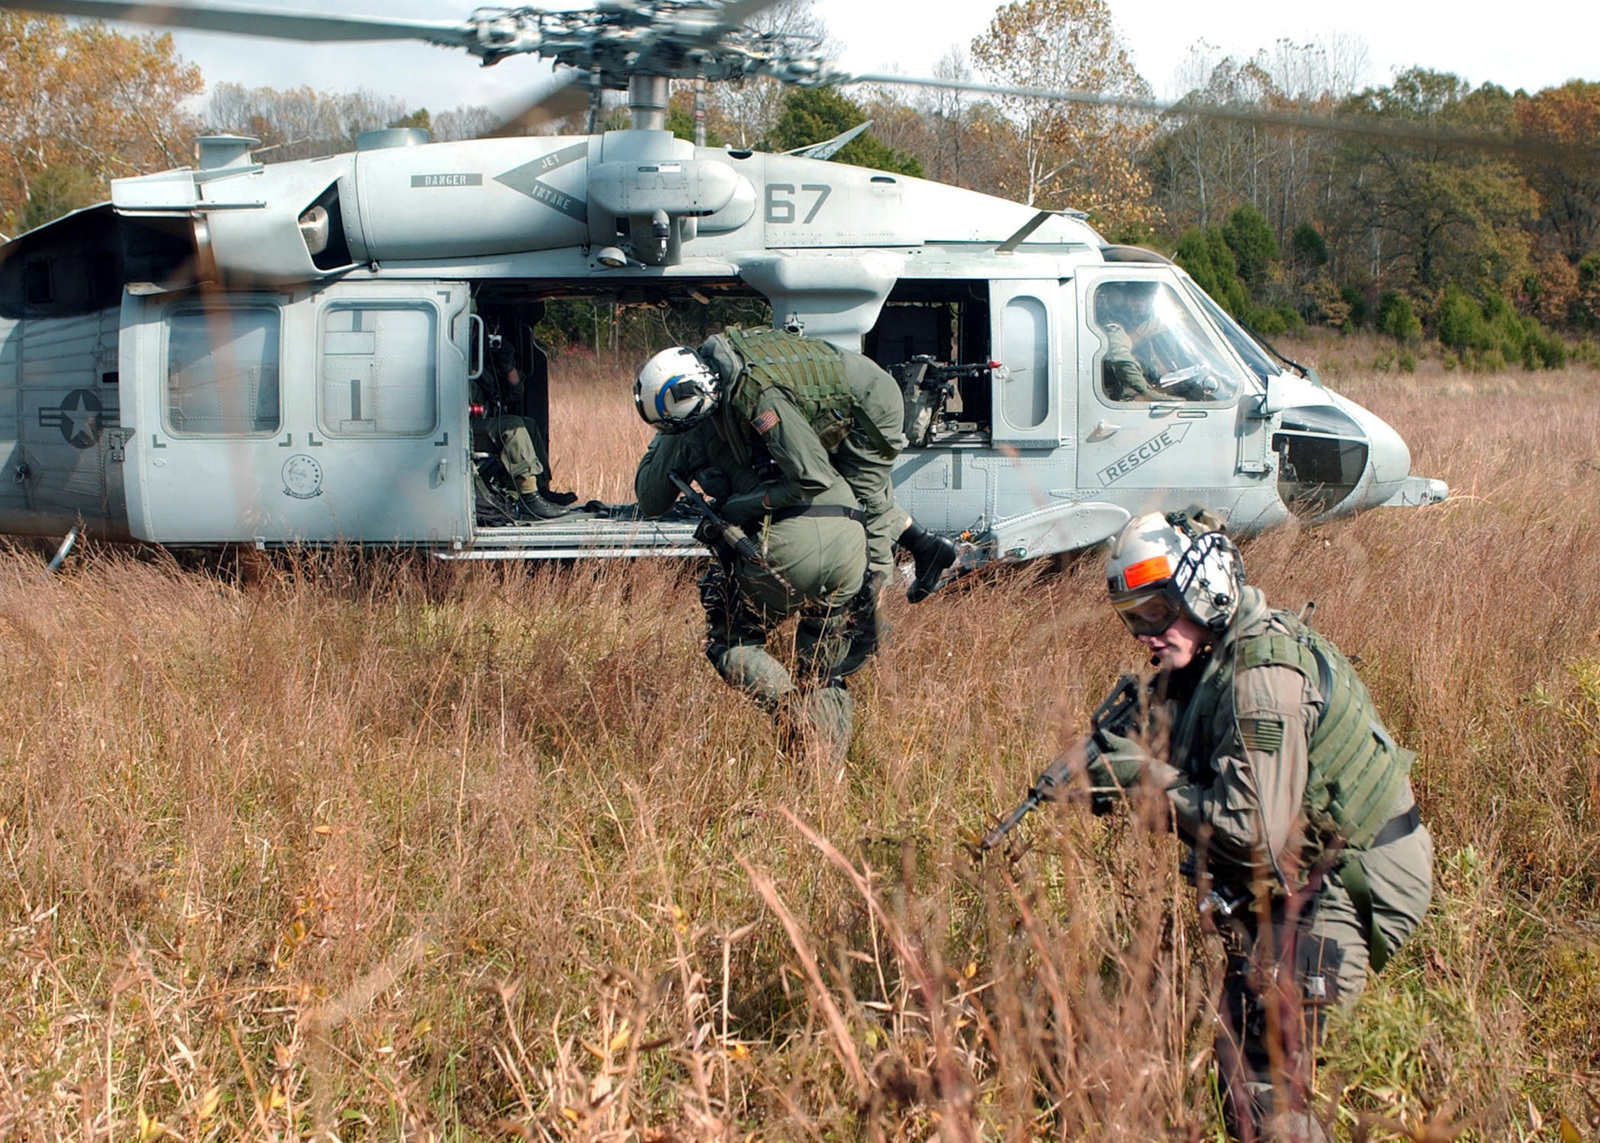 US Navy (USN) Aviation Ordnanceman Third Class (AO3) Rabea Shaiboon (foreground) stands ready to provide cover fire armed with a 5.56 mm M4 carbine, as USN Aviation Electronics Technician Second Class (AT2) Derek Nord, carries a downed aviator to a waiting MH-60S KnightHawk helicopter, from Helicopter Combat Support Squadron Six (HC-6), during urban assault and combat Search And Rescue (SAR) training with USN SEAL (Sea, Air, Land) team members at Fort Knox, Kentucky (KY)